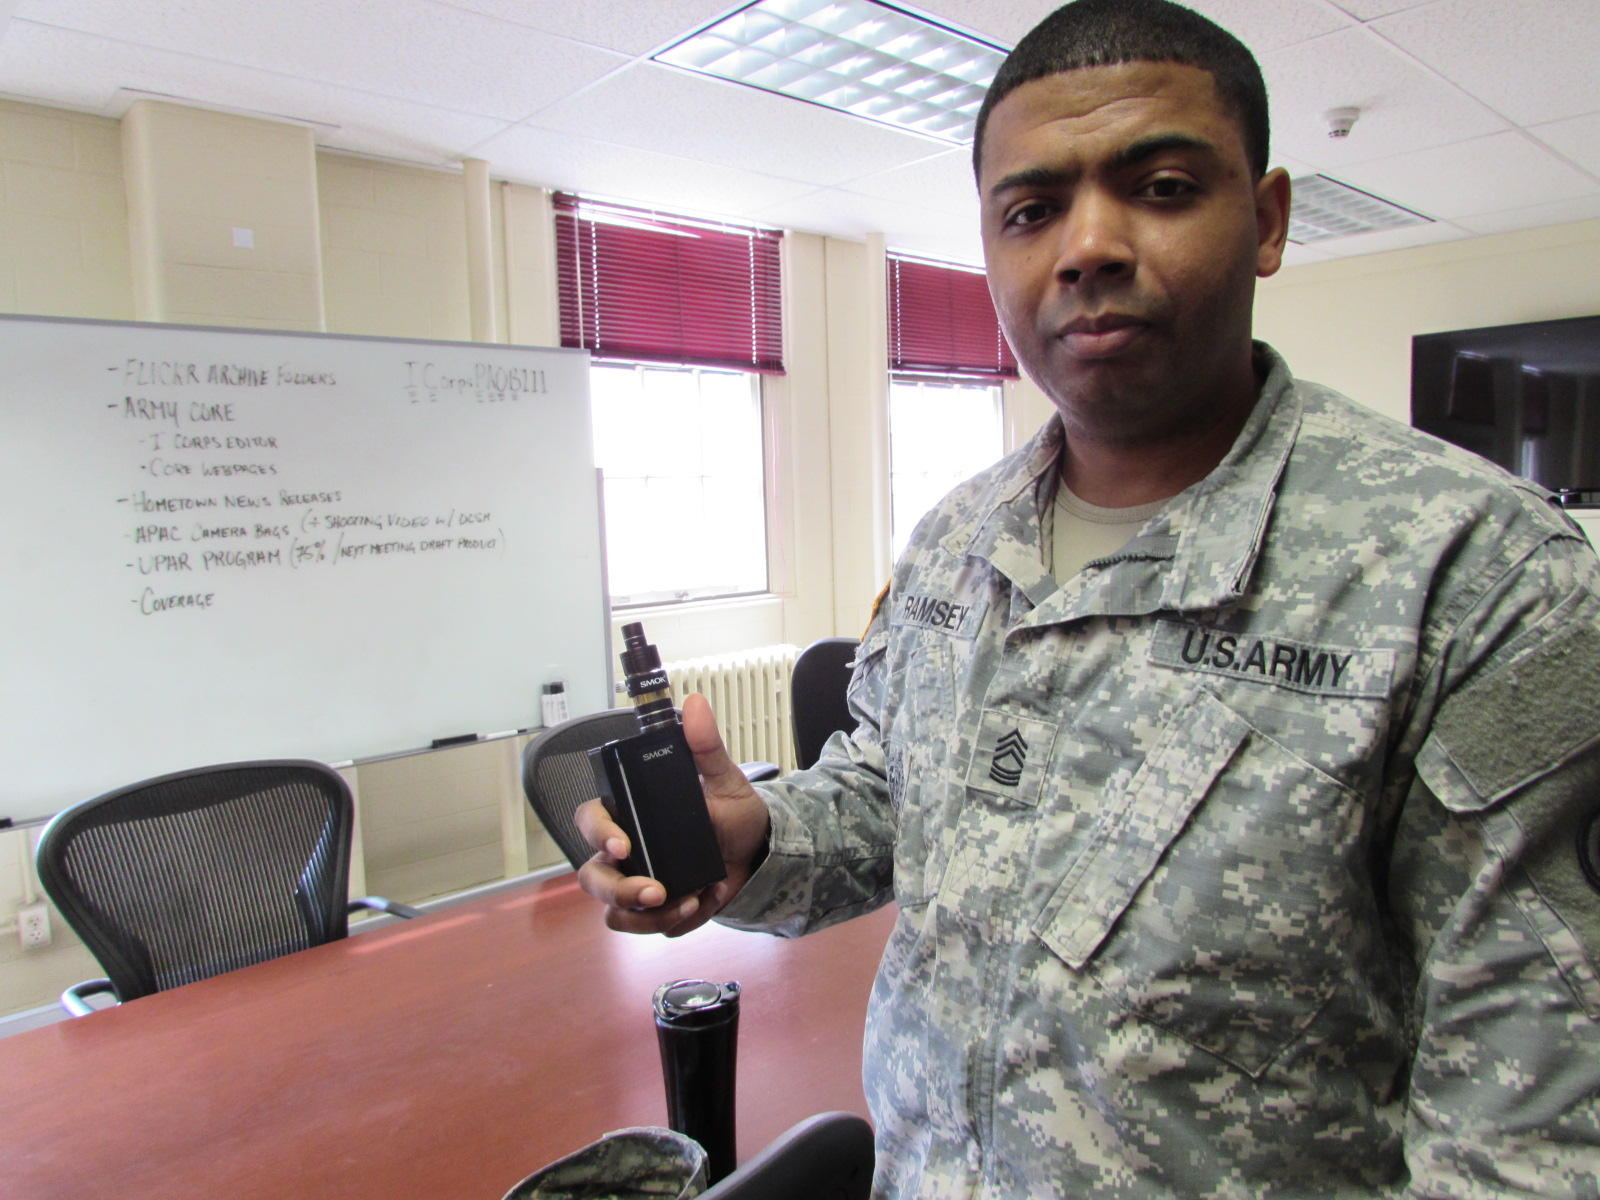 Soldiers Still Love Their Smokes, To Army's Dismay | KUOW